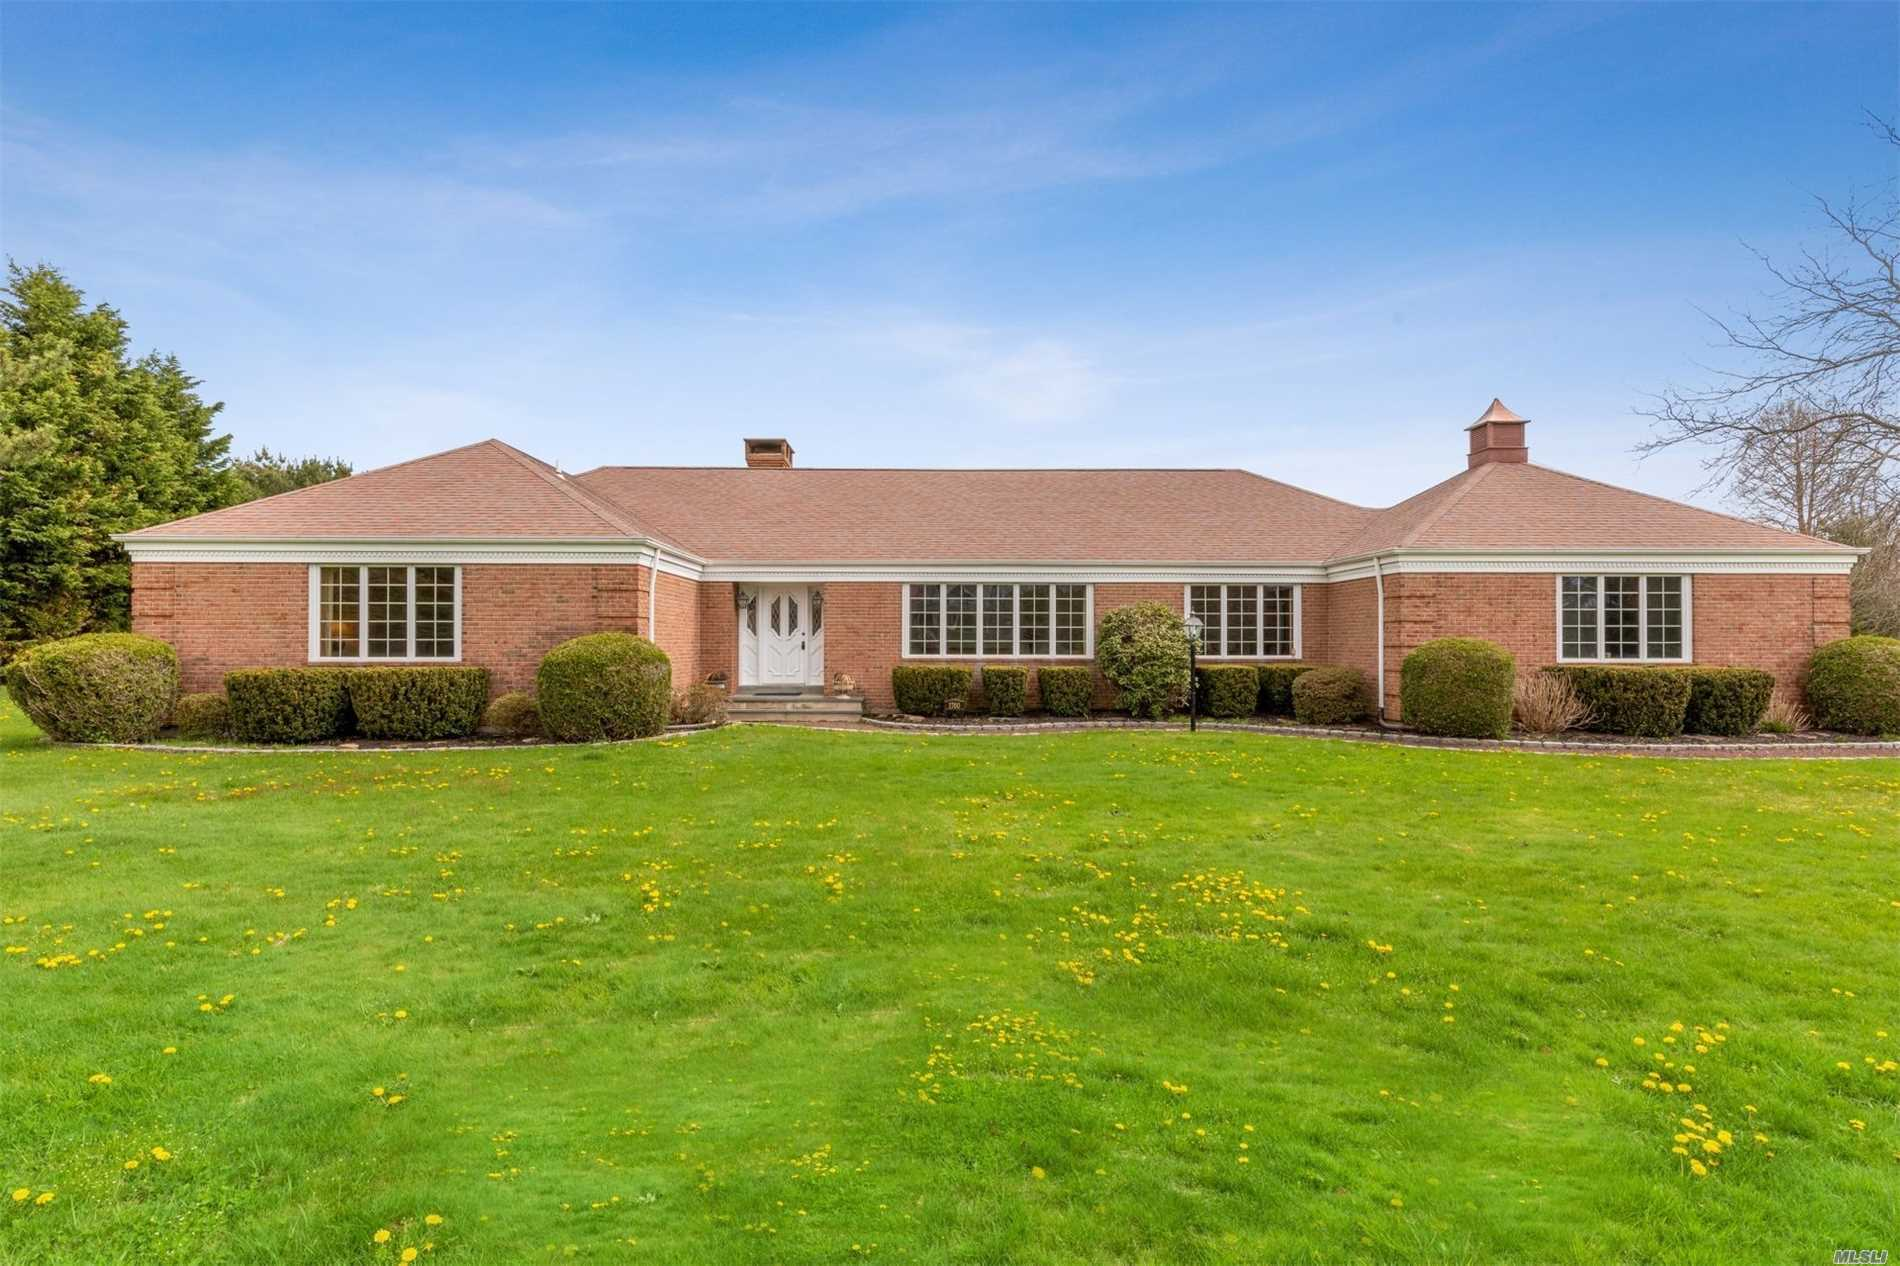 Stately Custom Brick Ranch Located On Manicured Acre, Features 3/4 Bedrooms, 2.5 Baths, Large Eat-In Kitchen, Living Room, Formal Dining, Great Room With Fireplace Overlooking Deck And Rear Yard, Laundry/Mud Room, 2 Car Garage.